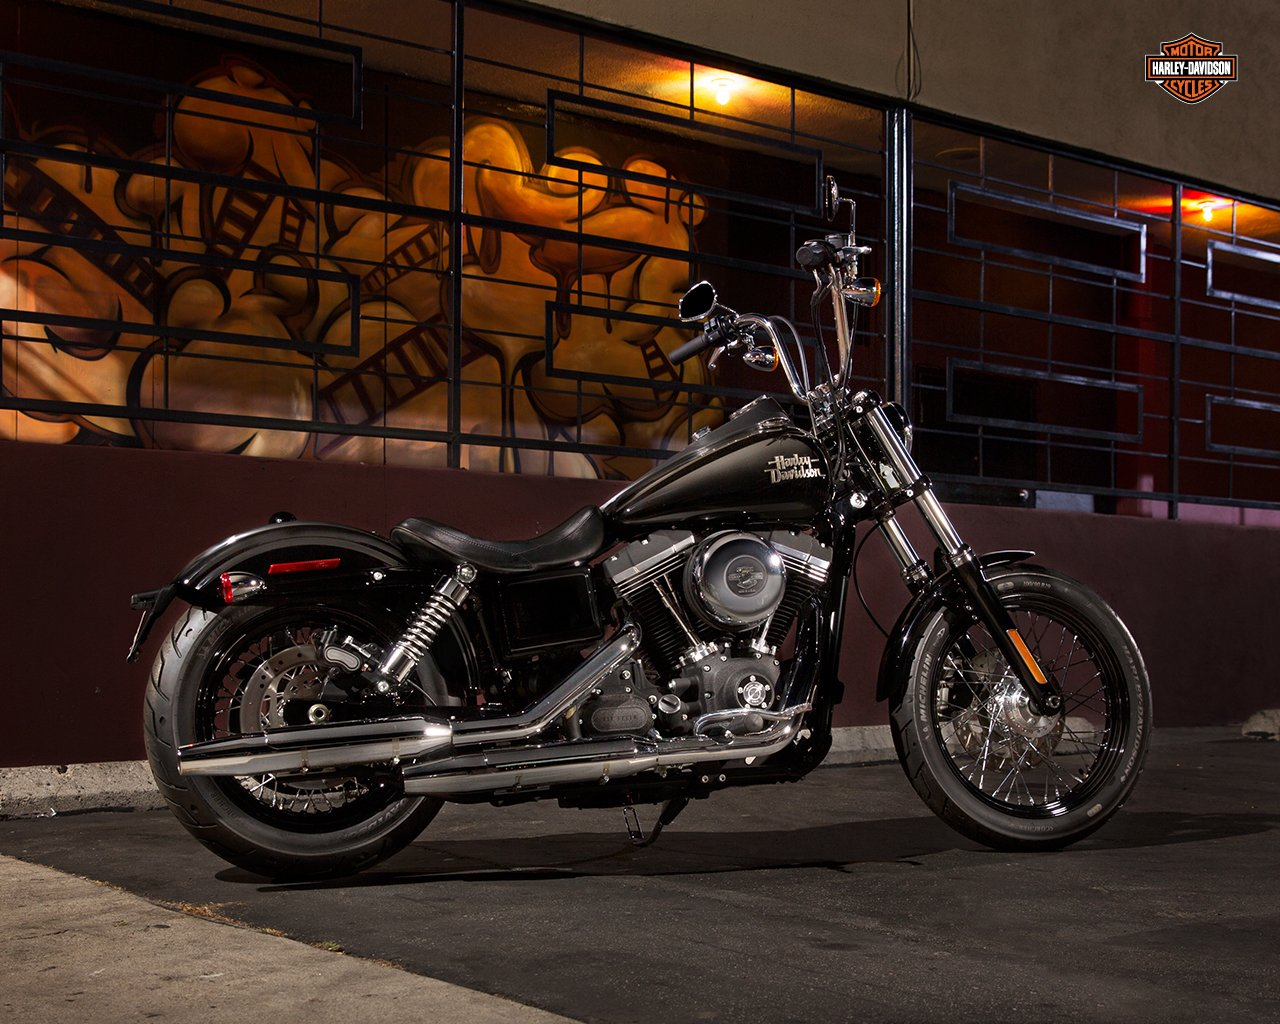 2014 Street Bob Harley Davidson With Resolutions 12801024 Pixel 1280x1024